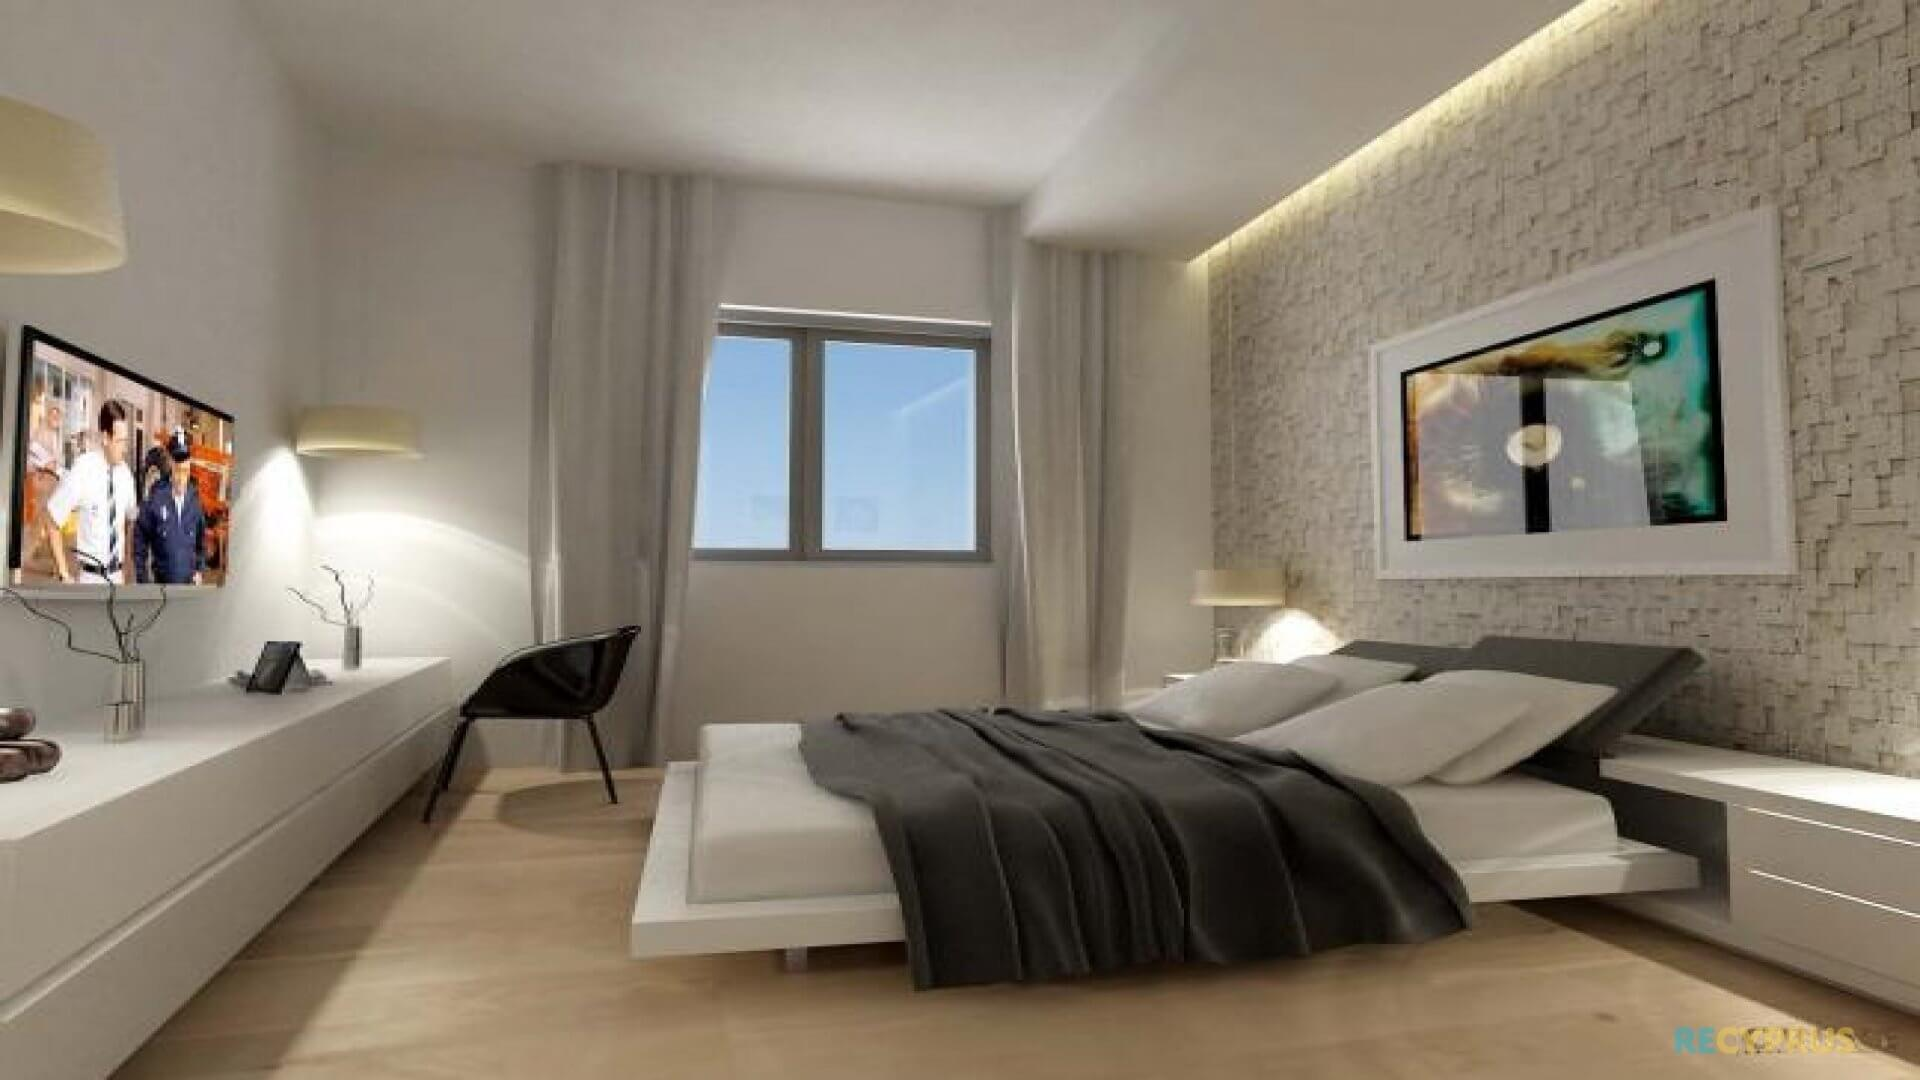 Apartment for sale City Center Larnaca Cyprus 7 3581